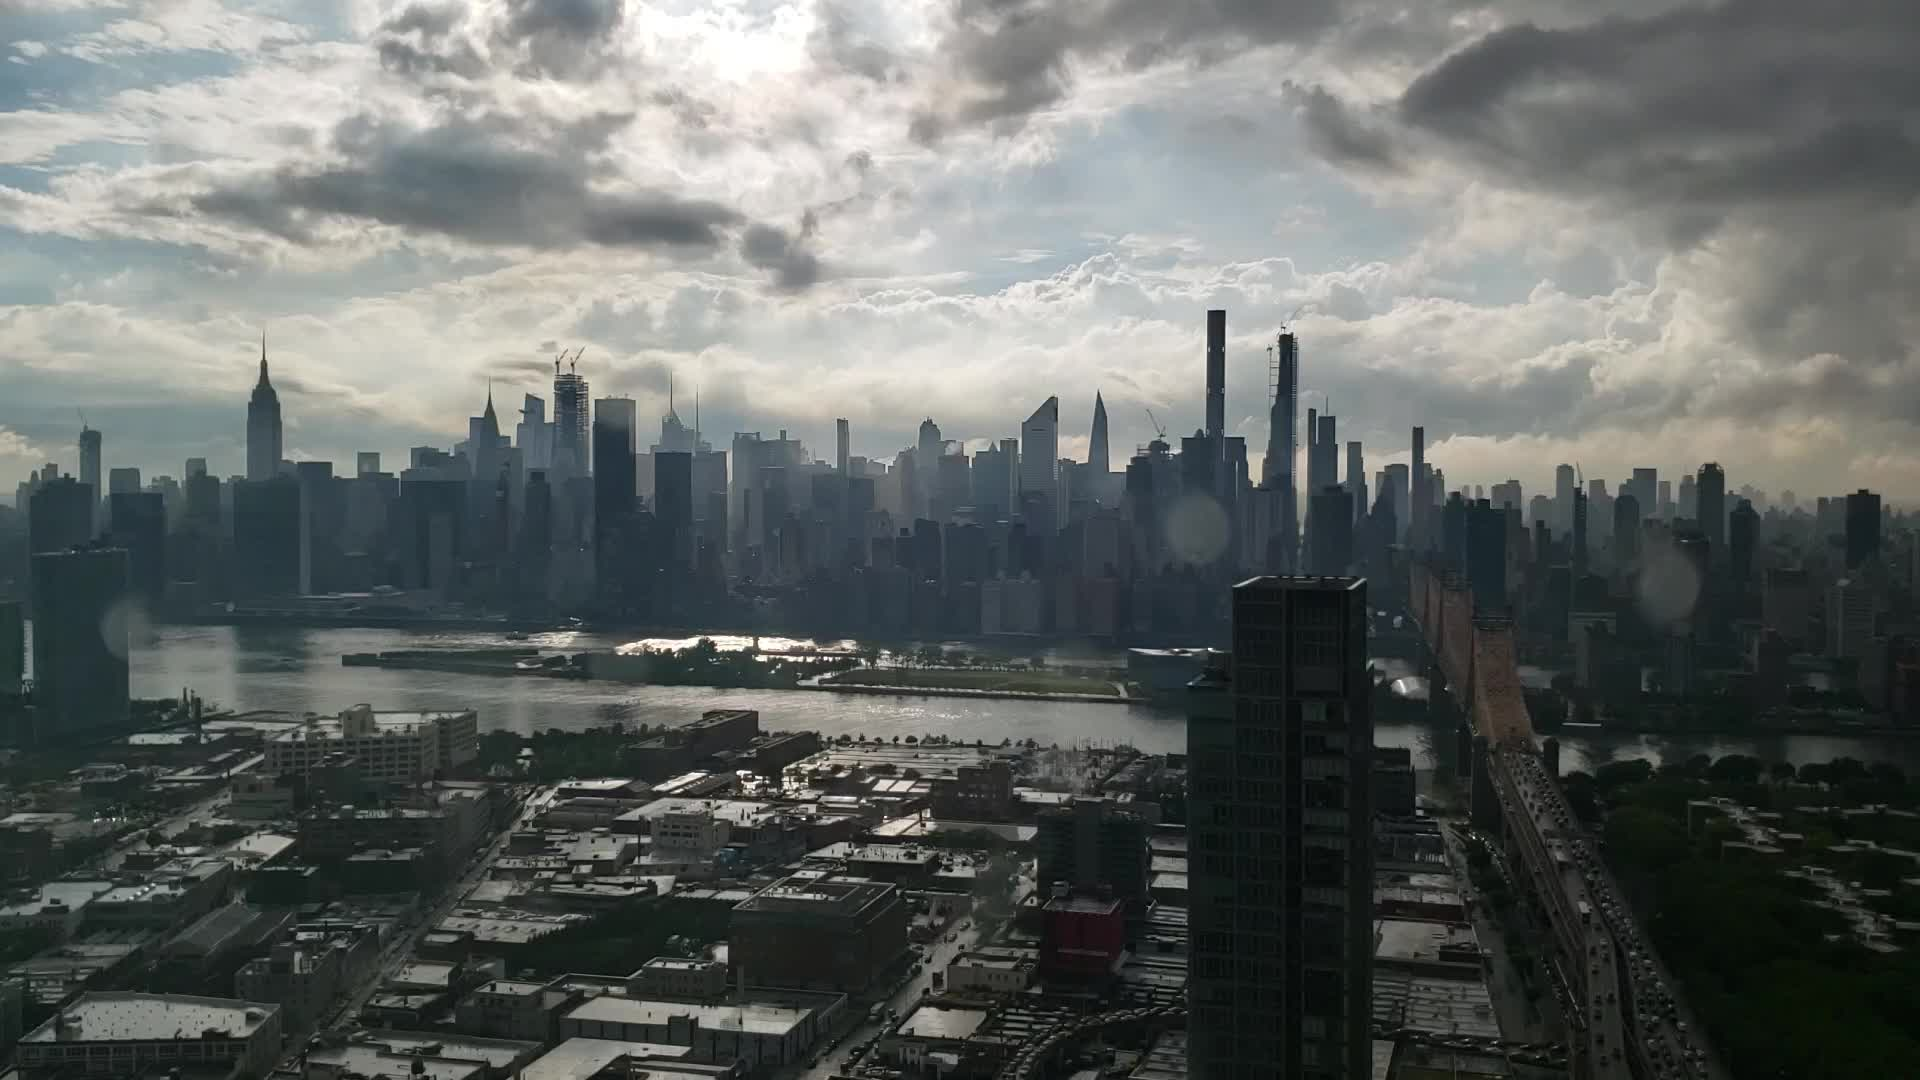 NYC Timelapse GIFs